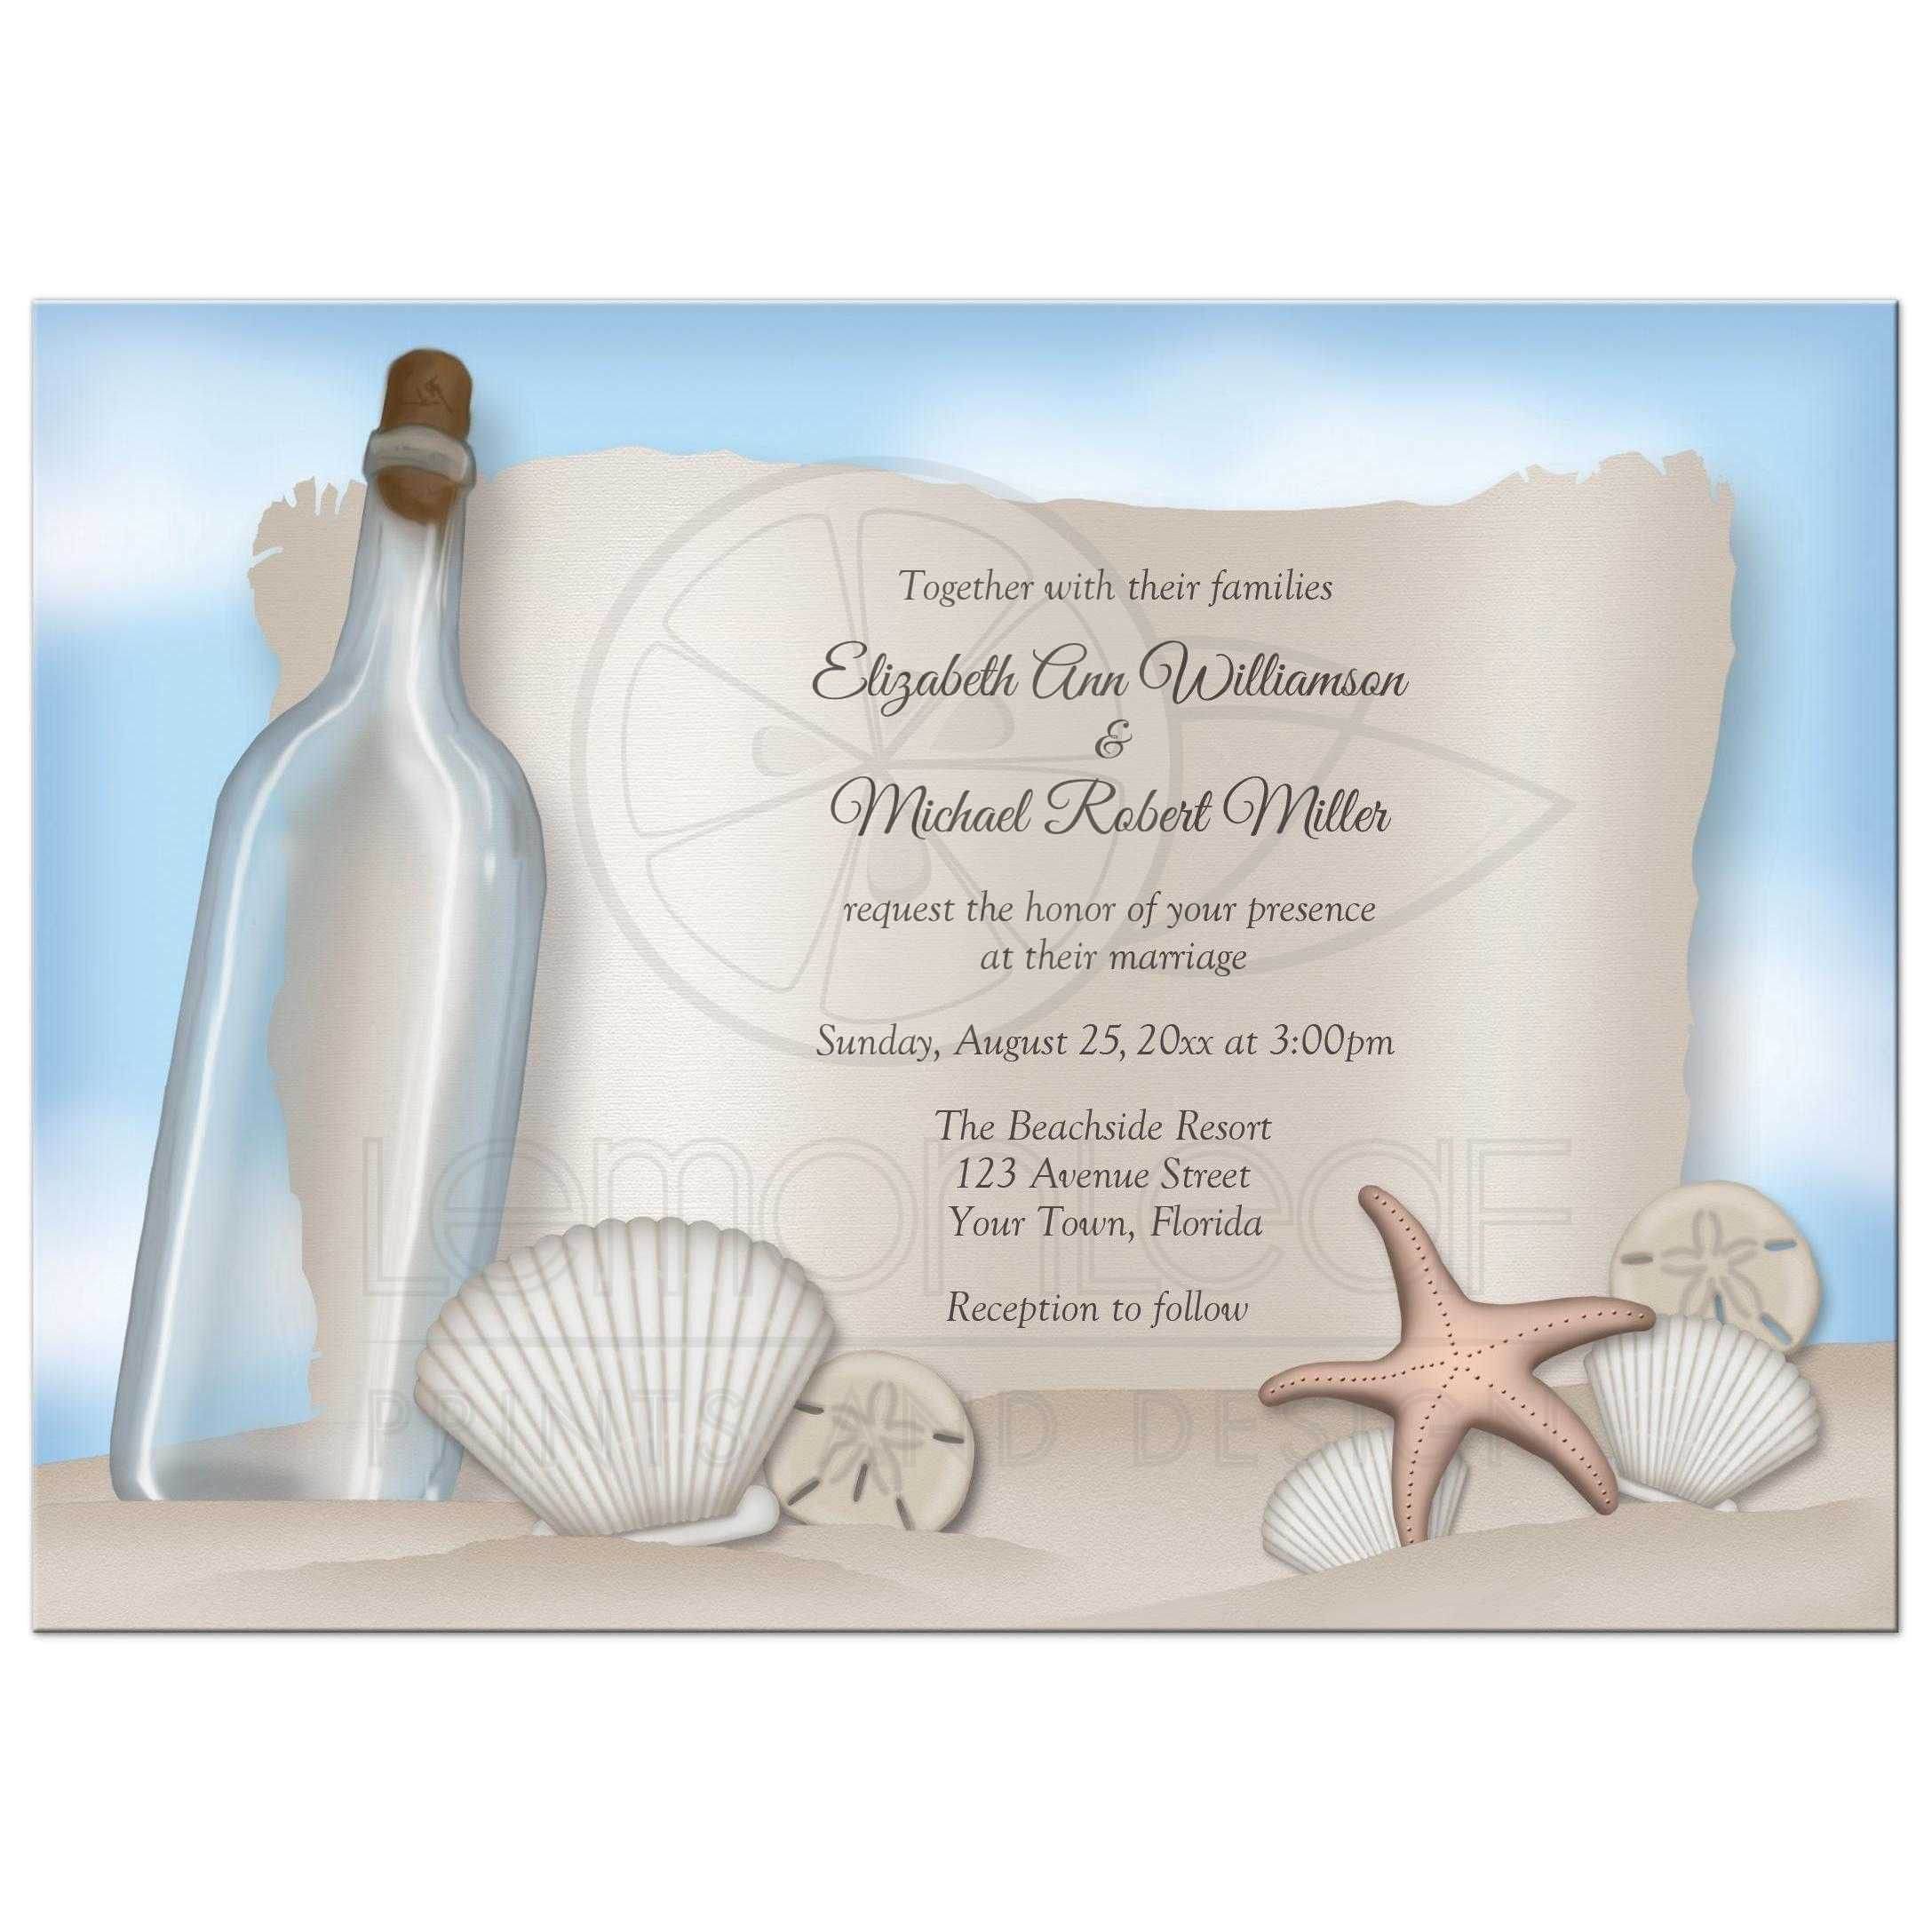 Under The Sea Invitation Ideas Google Search: Beach Themed Wedding Invitations At Websimilar.org